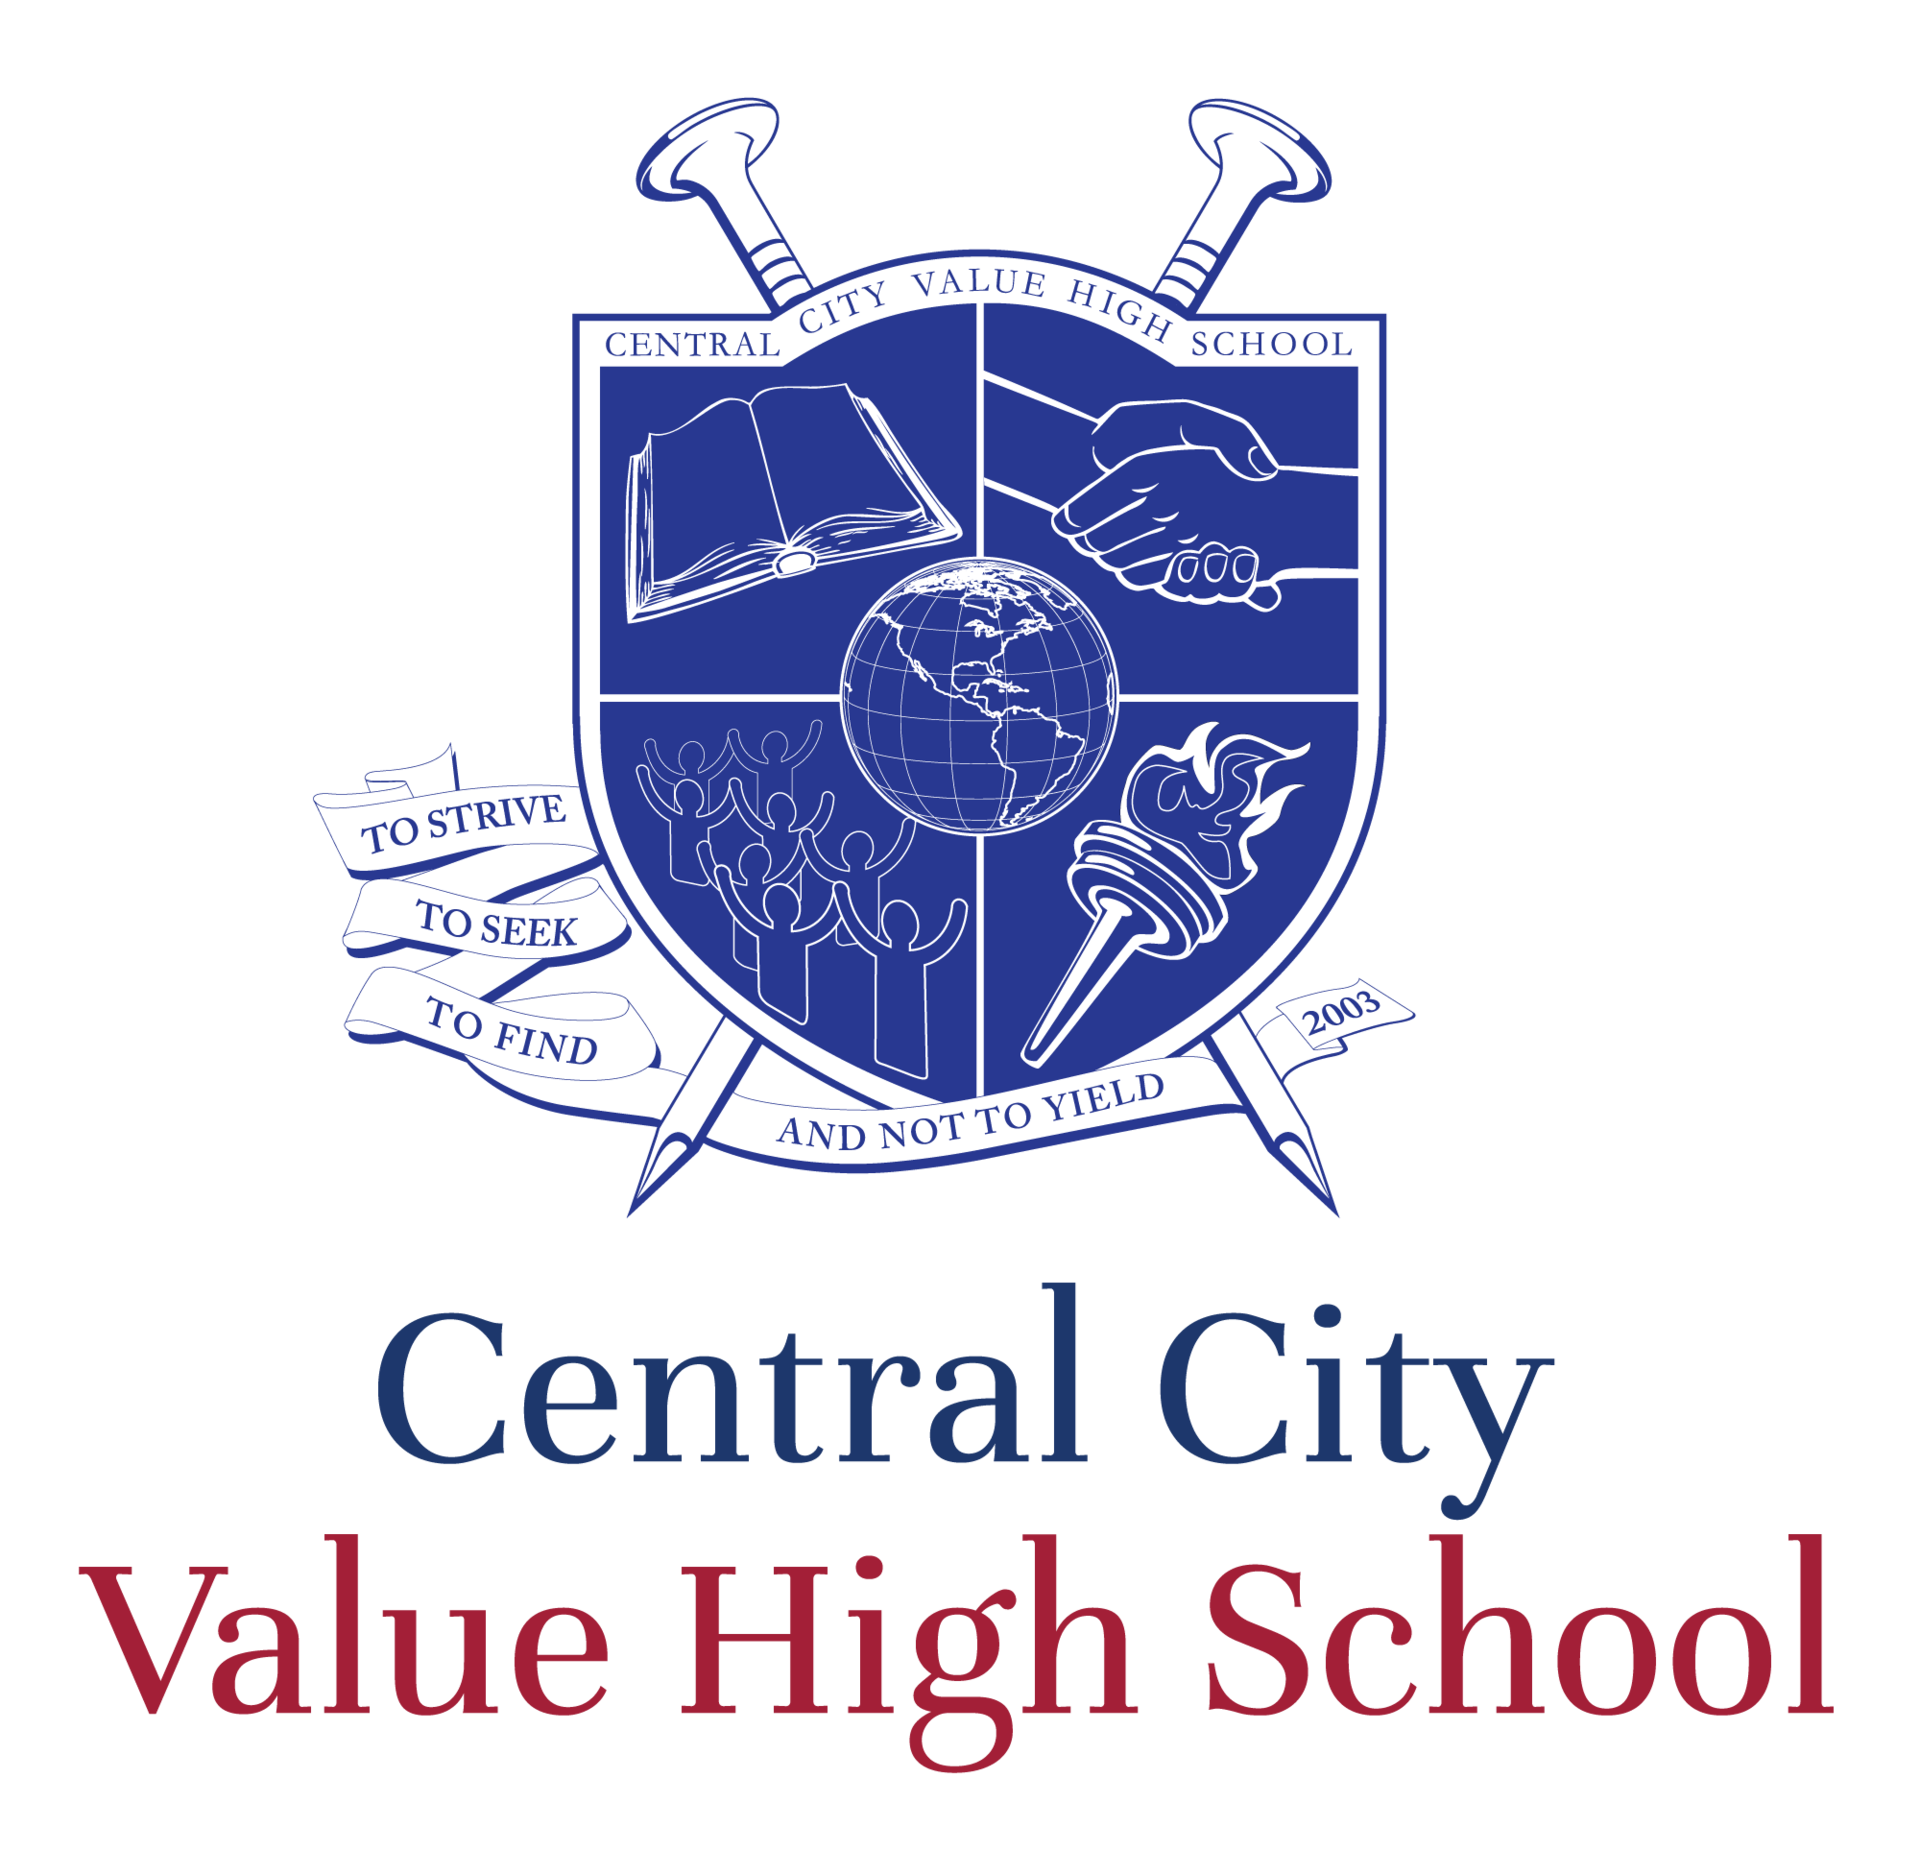 Apply to Central City Value High School